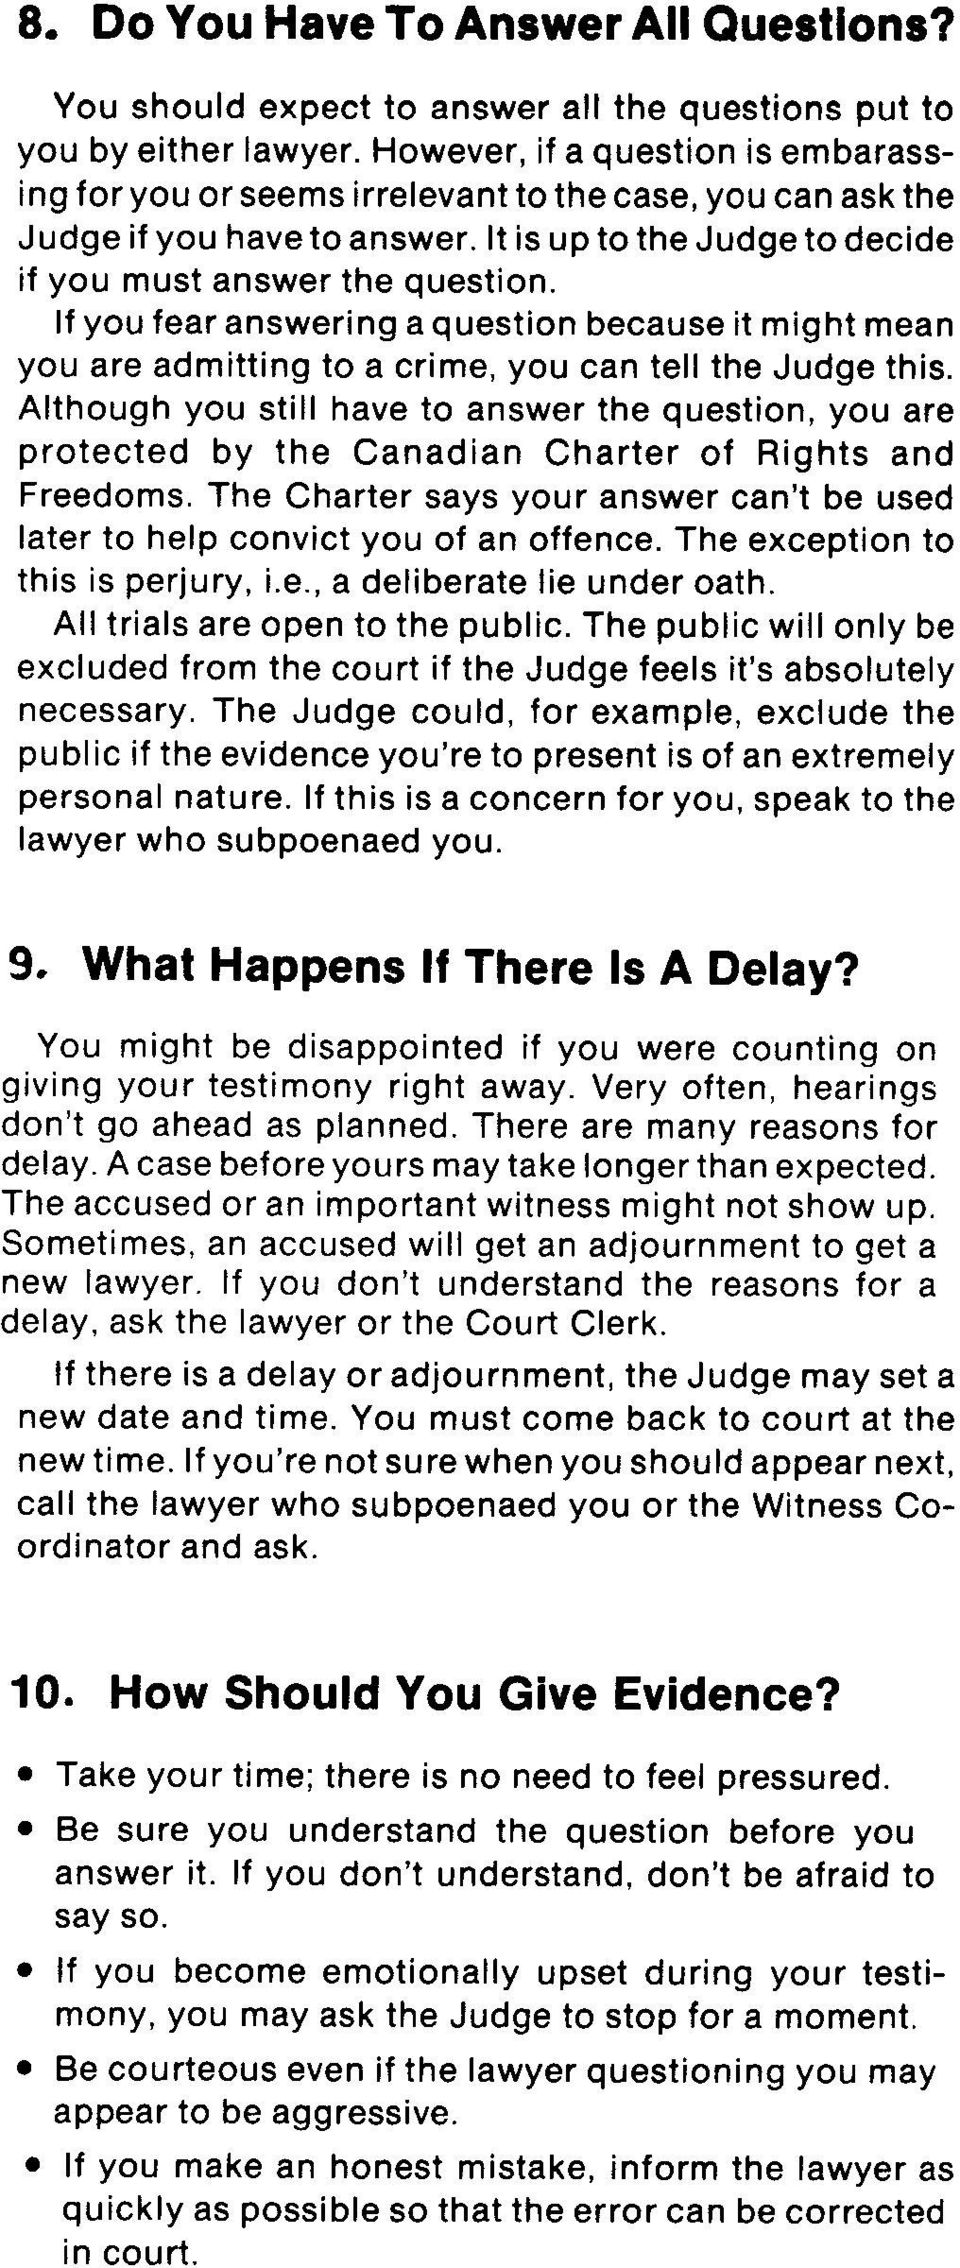 If you fear answering a question because it might mean you are admitting to a crime, you can tell the Judge this.